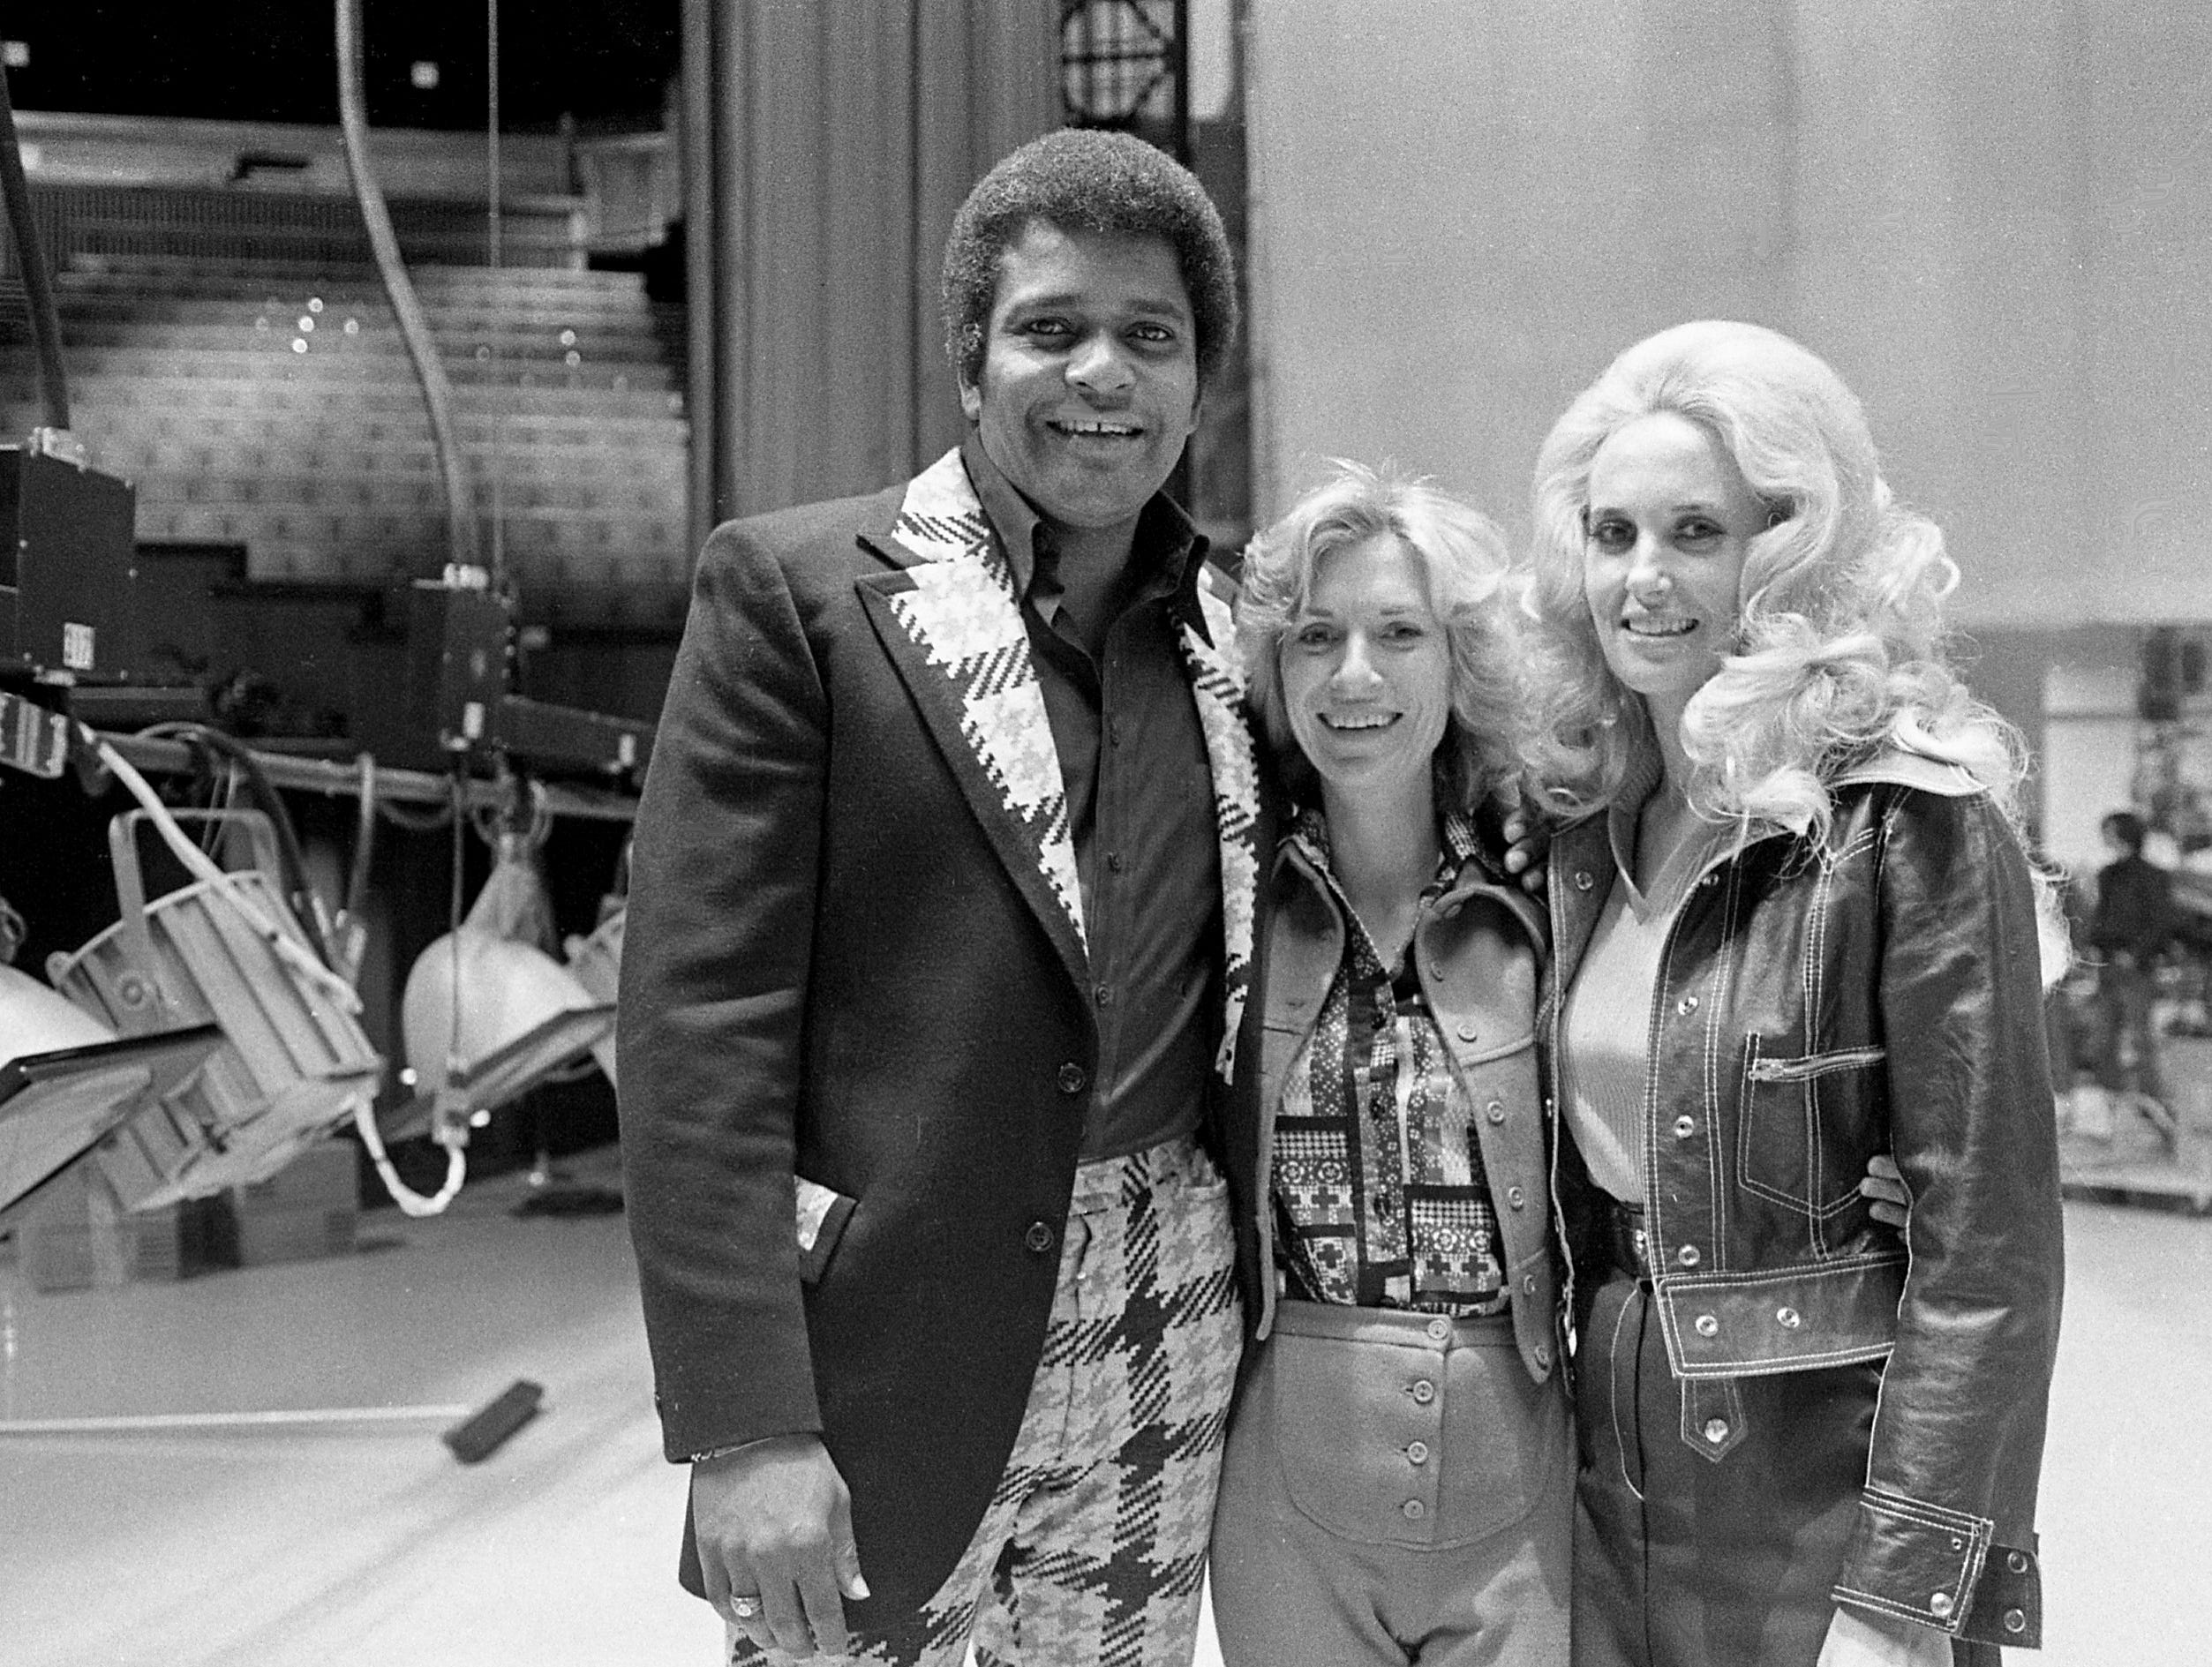 Tennessean reporter Lynn Harvey, center, poses with country music stars Charley Pride and Tammy Wynette on the stage of the Grand Ole Opry House on Jan. 14, 1975.